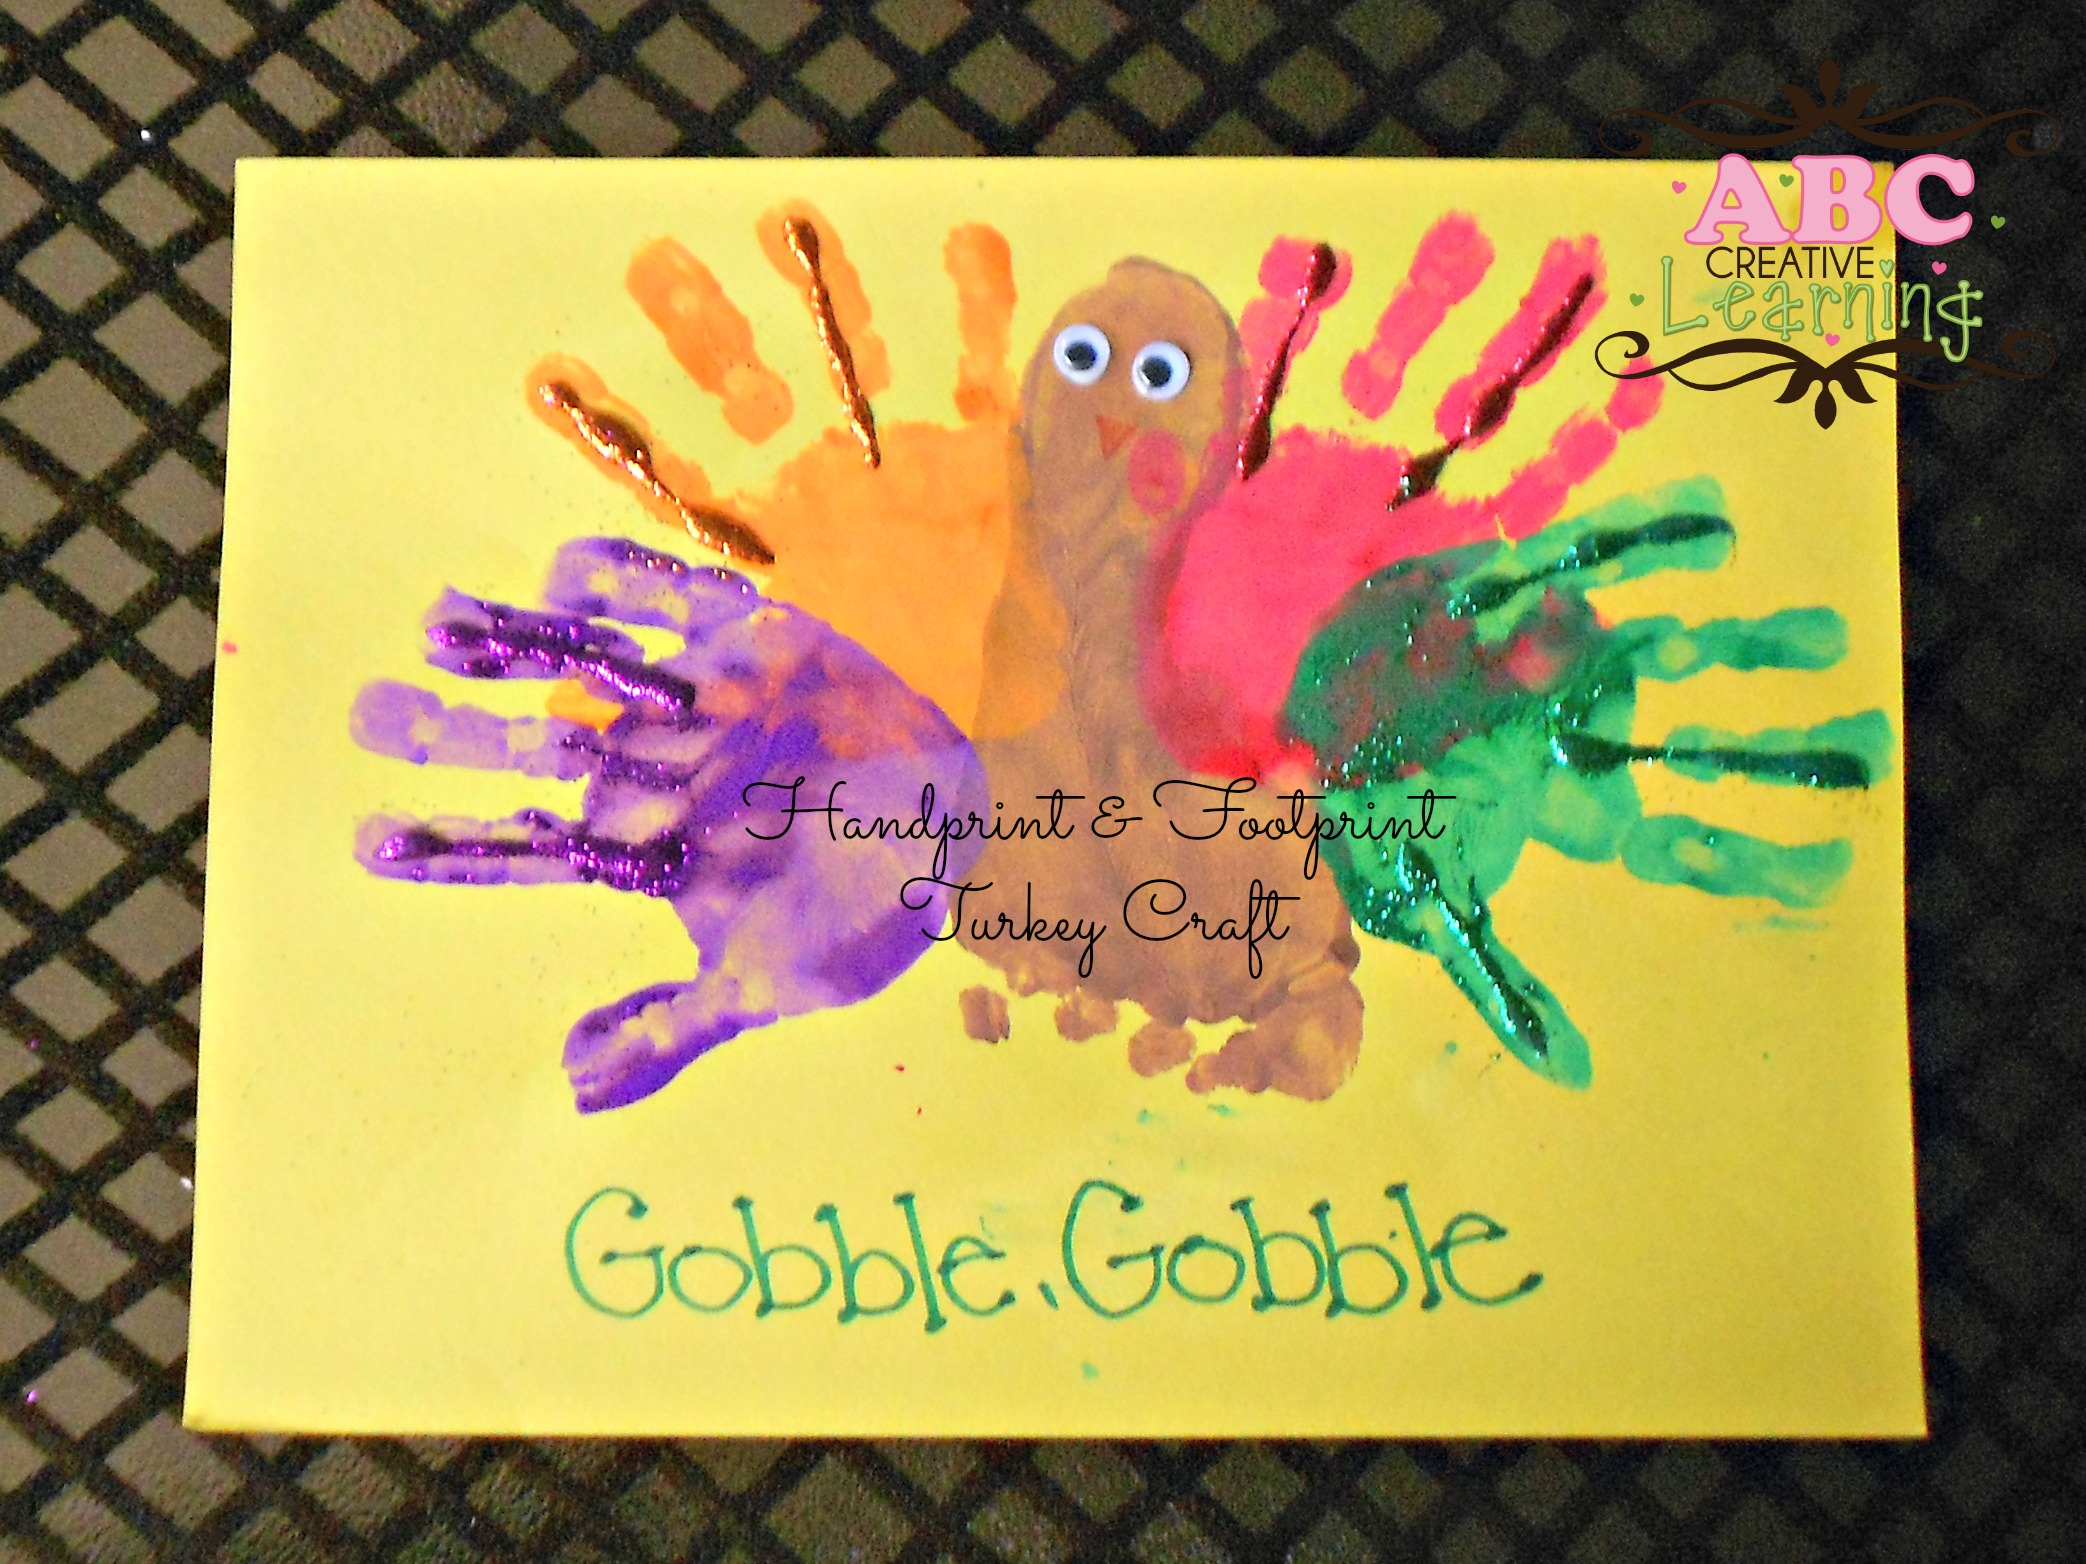 Easy peasy and fun handprint crafts make the perfect little keepsakes. Handprint And Footprint Kids Arts And Crafts